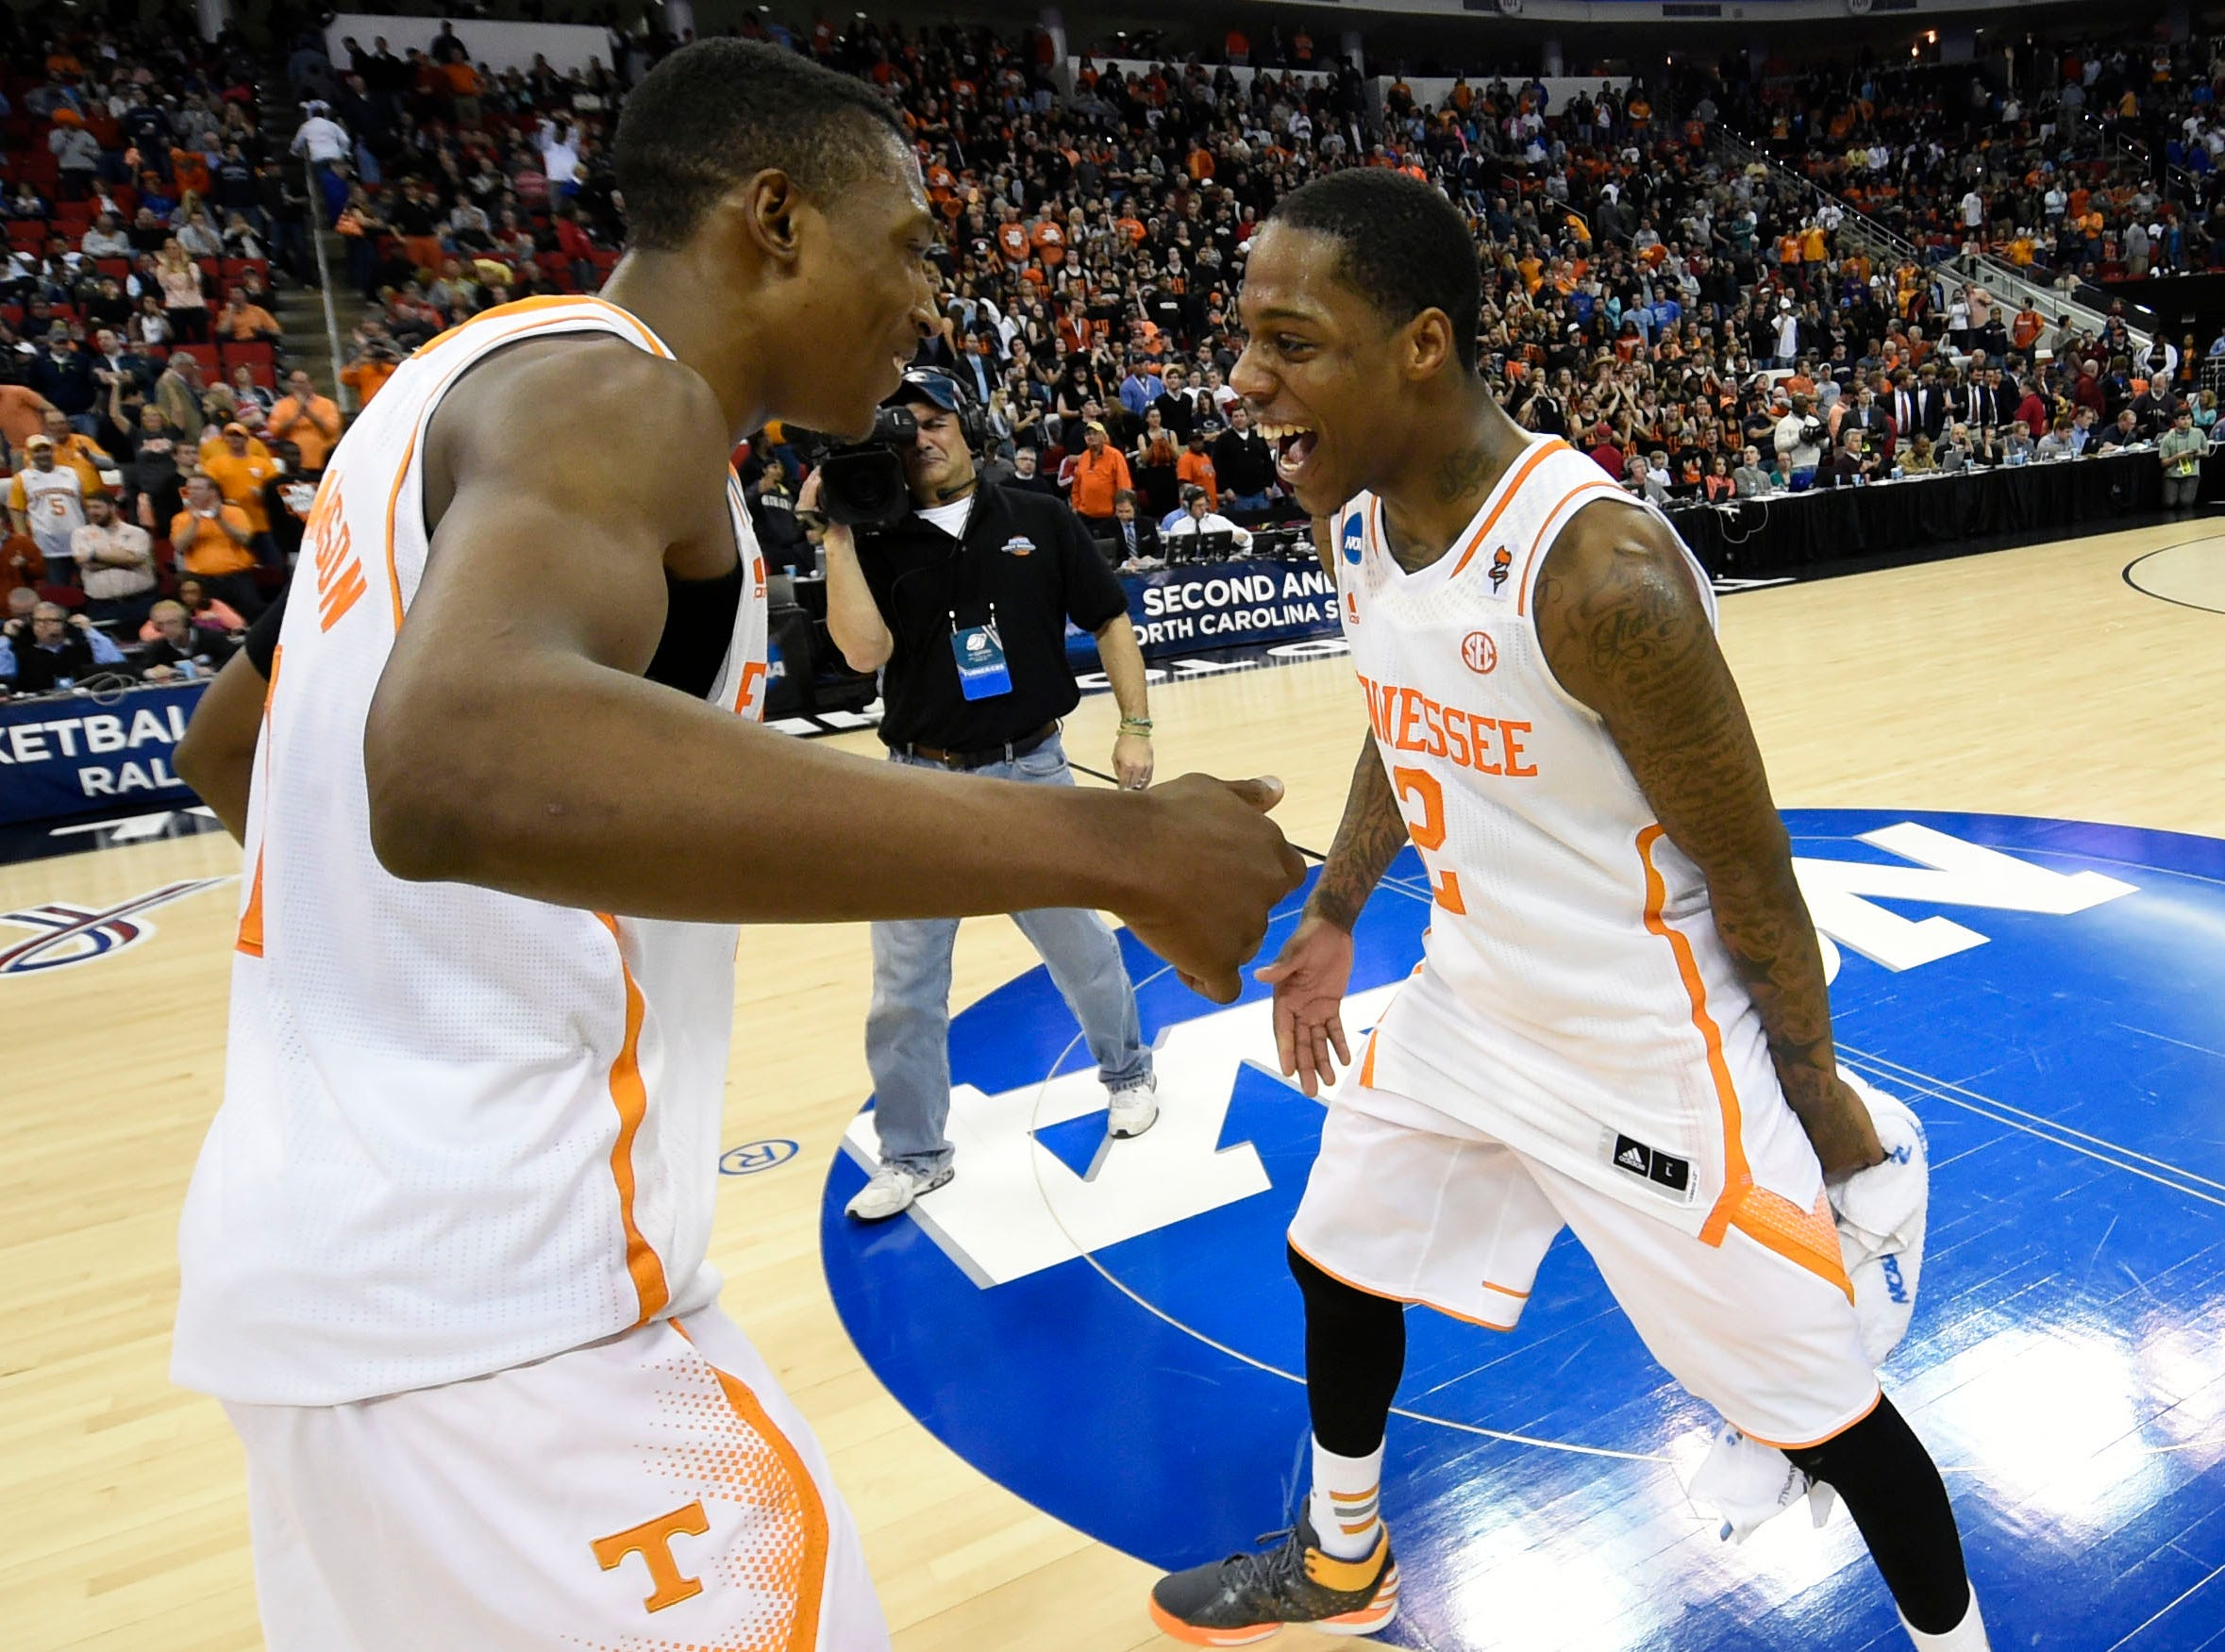 Tennessee guard Josh Richardson (1) and Tennessee guard Antonio Barton (2), from left, celebrate after securing a Sweet Sixteen berth by defeating Mercer 83-63 in a third-round NCAA tournament game at the PNC Arena in Raleigh, N.C. on Sunday, March 23, 2014.